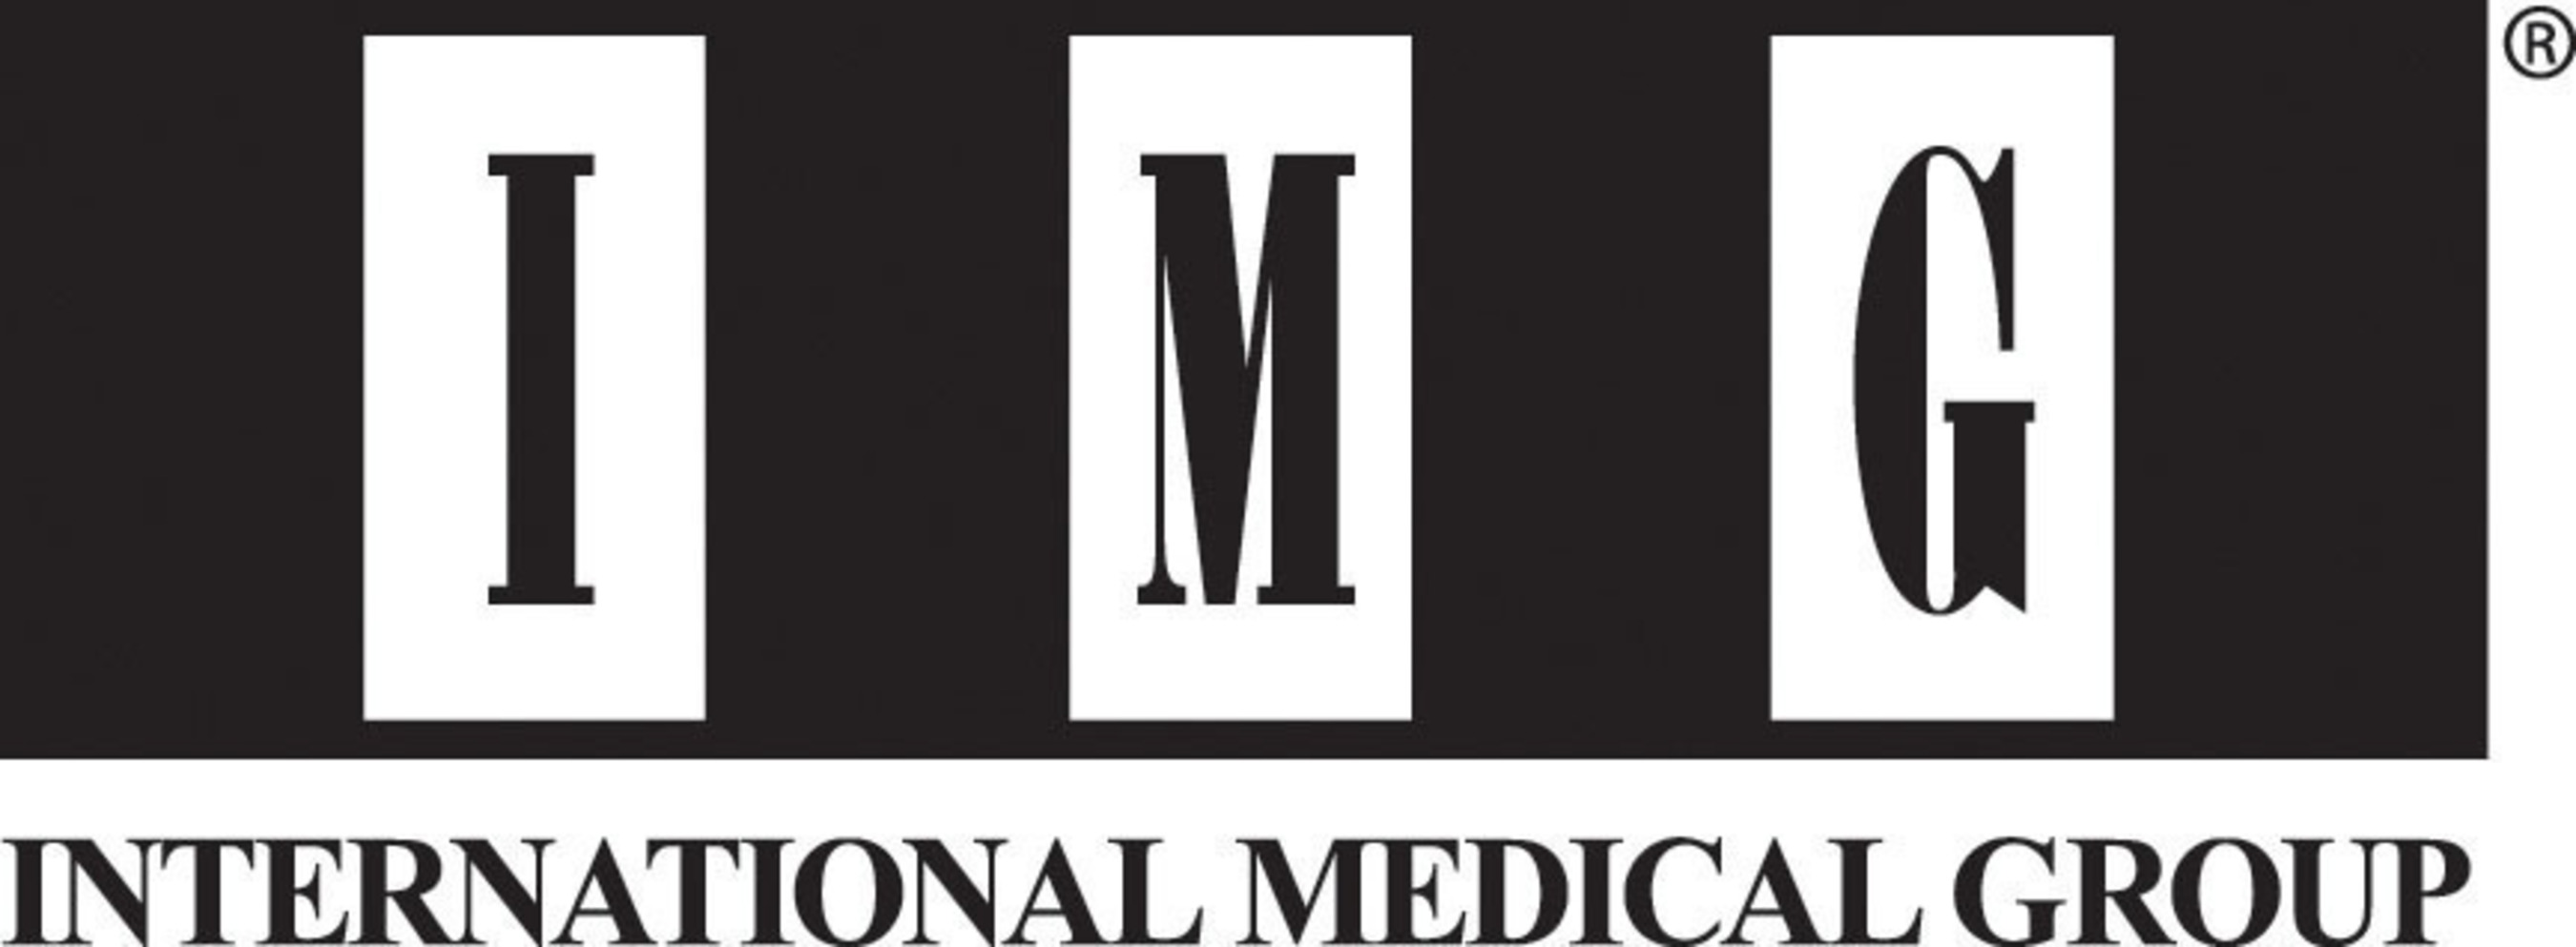 International Medical Group Announces Leadership Changes